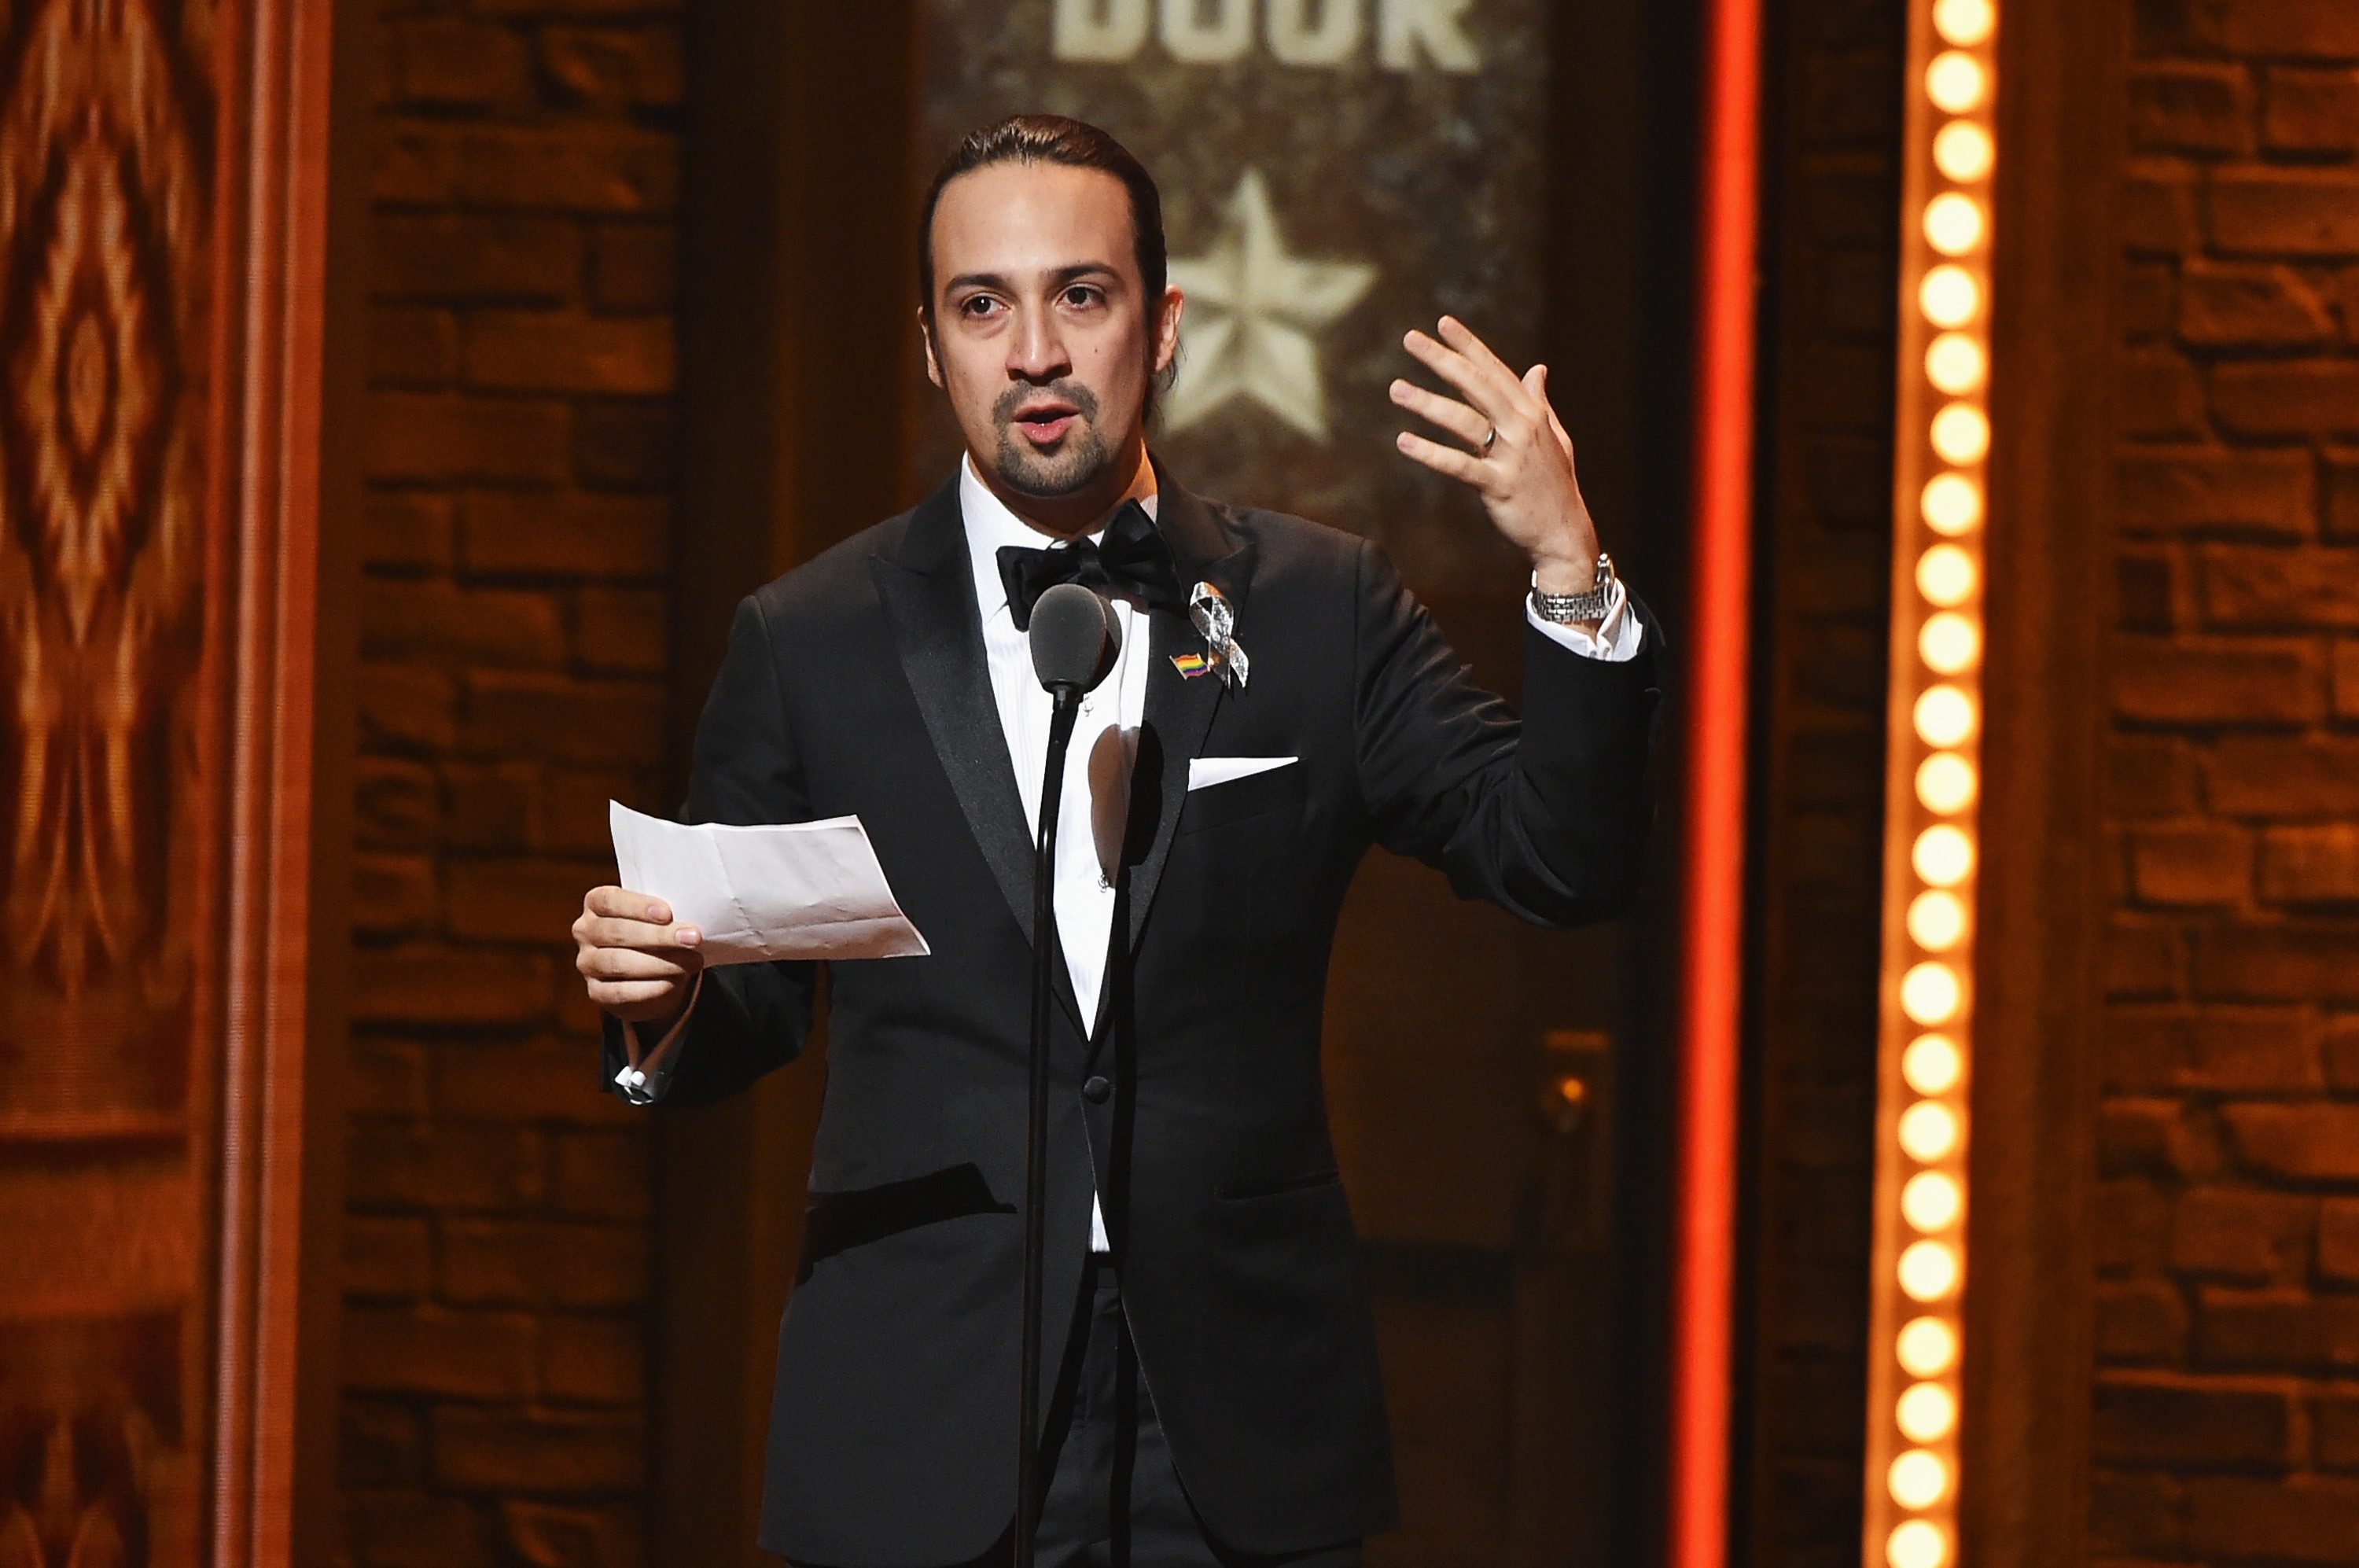 Lin-Manuel Miranda is going to be on 'Drunk History' telling—duh—the story of Hamilton and Burr